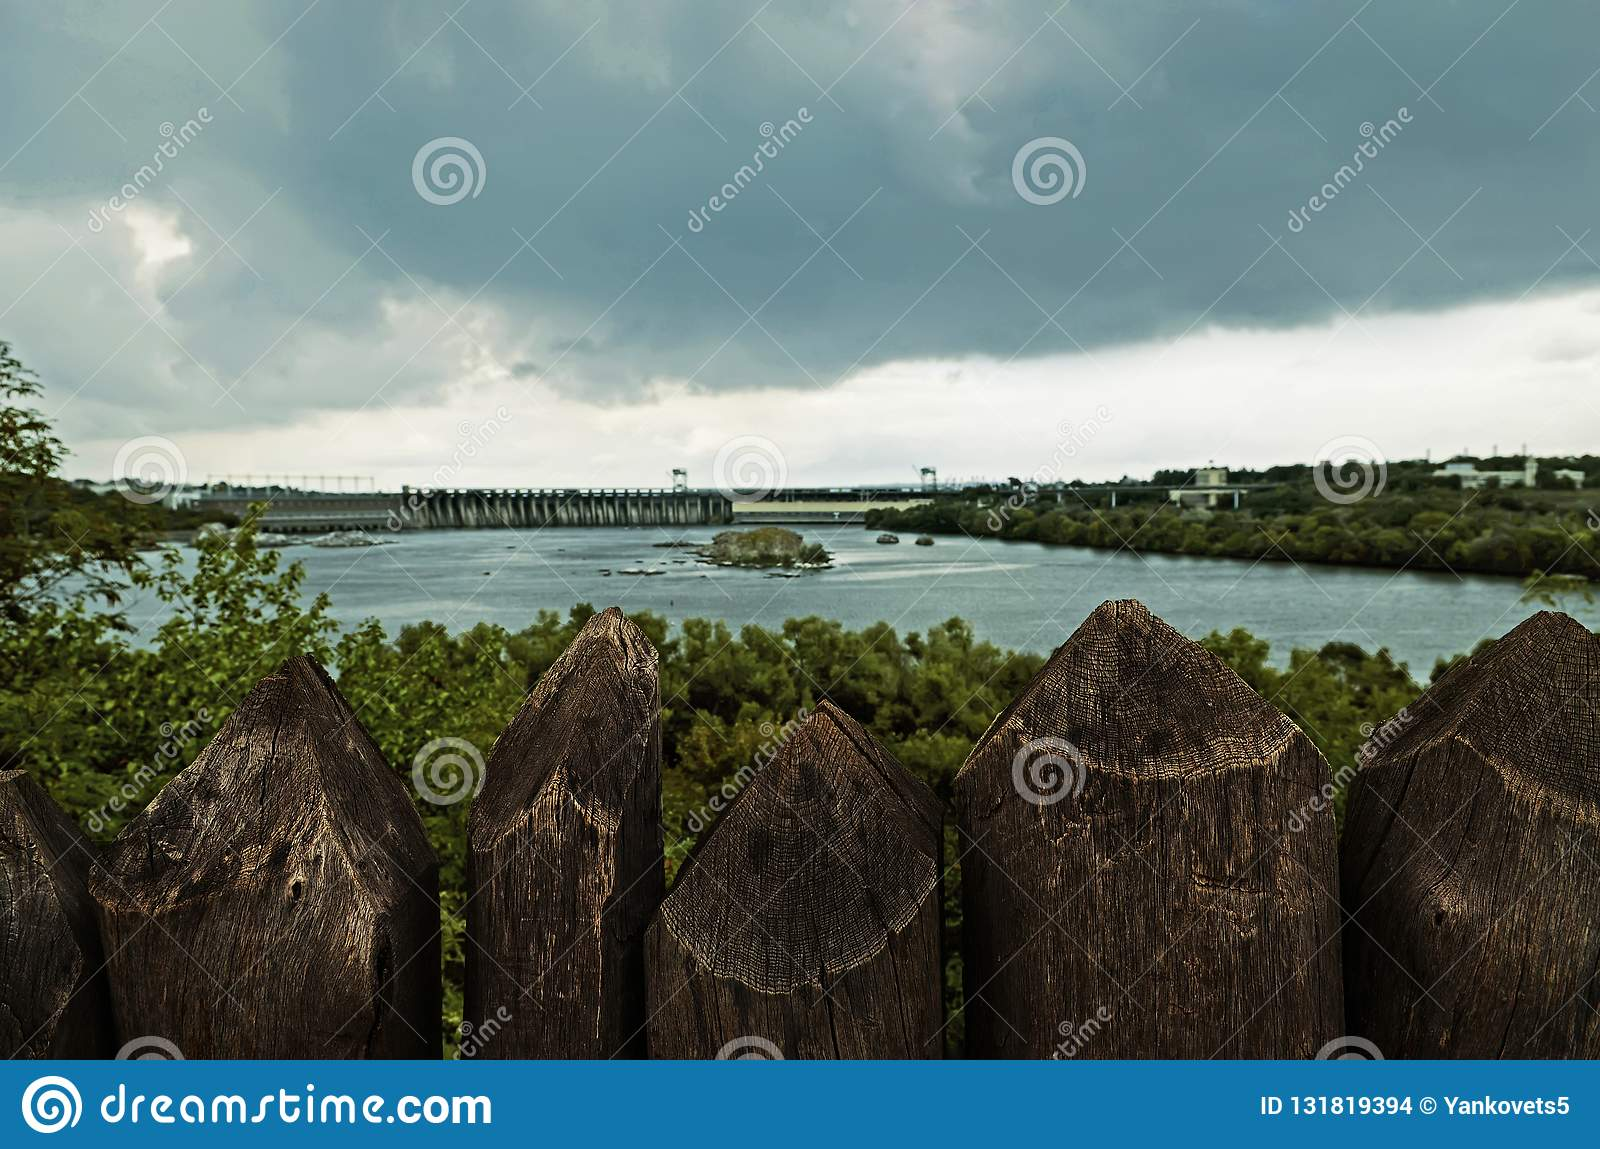 Wooden palisade stands against the backdrop of a hydroelectric dam under a dark stormy sky